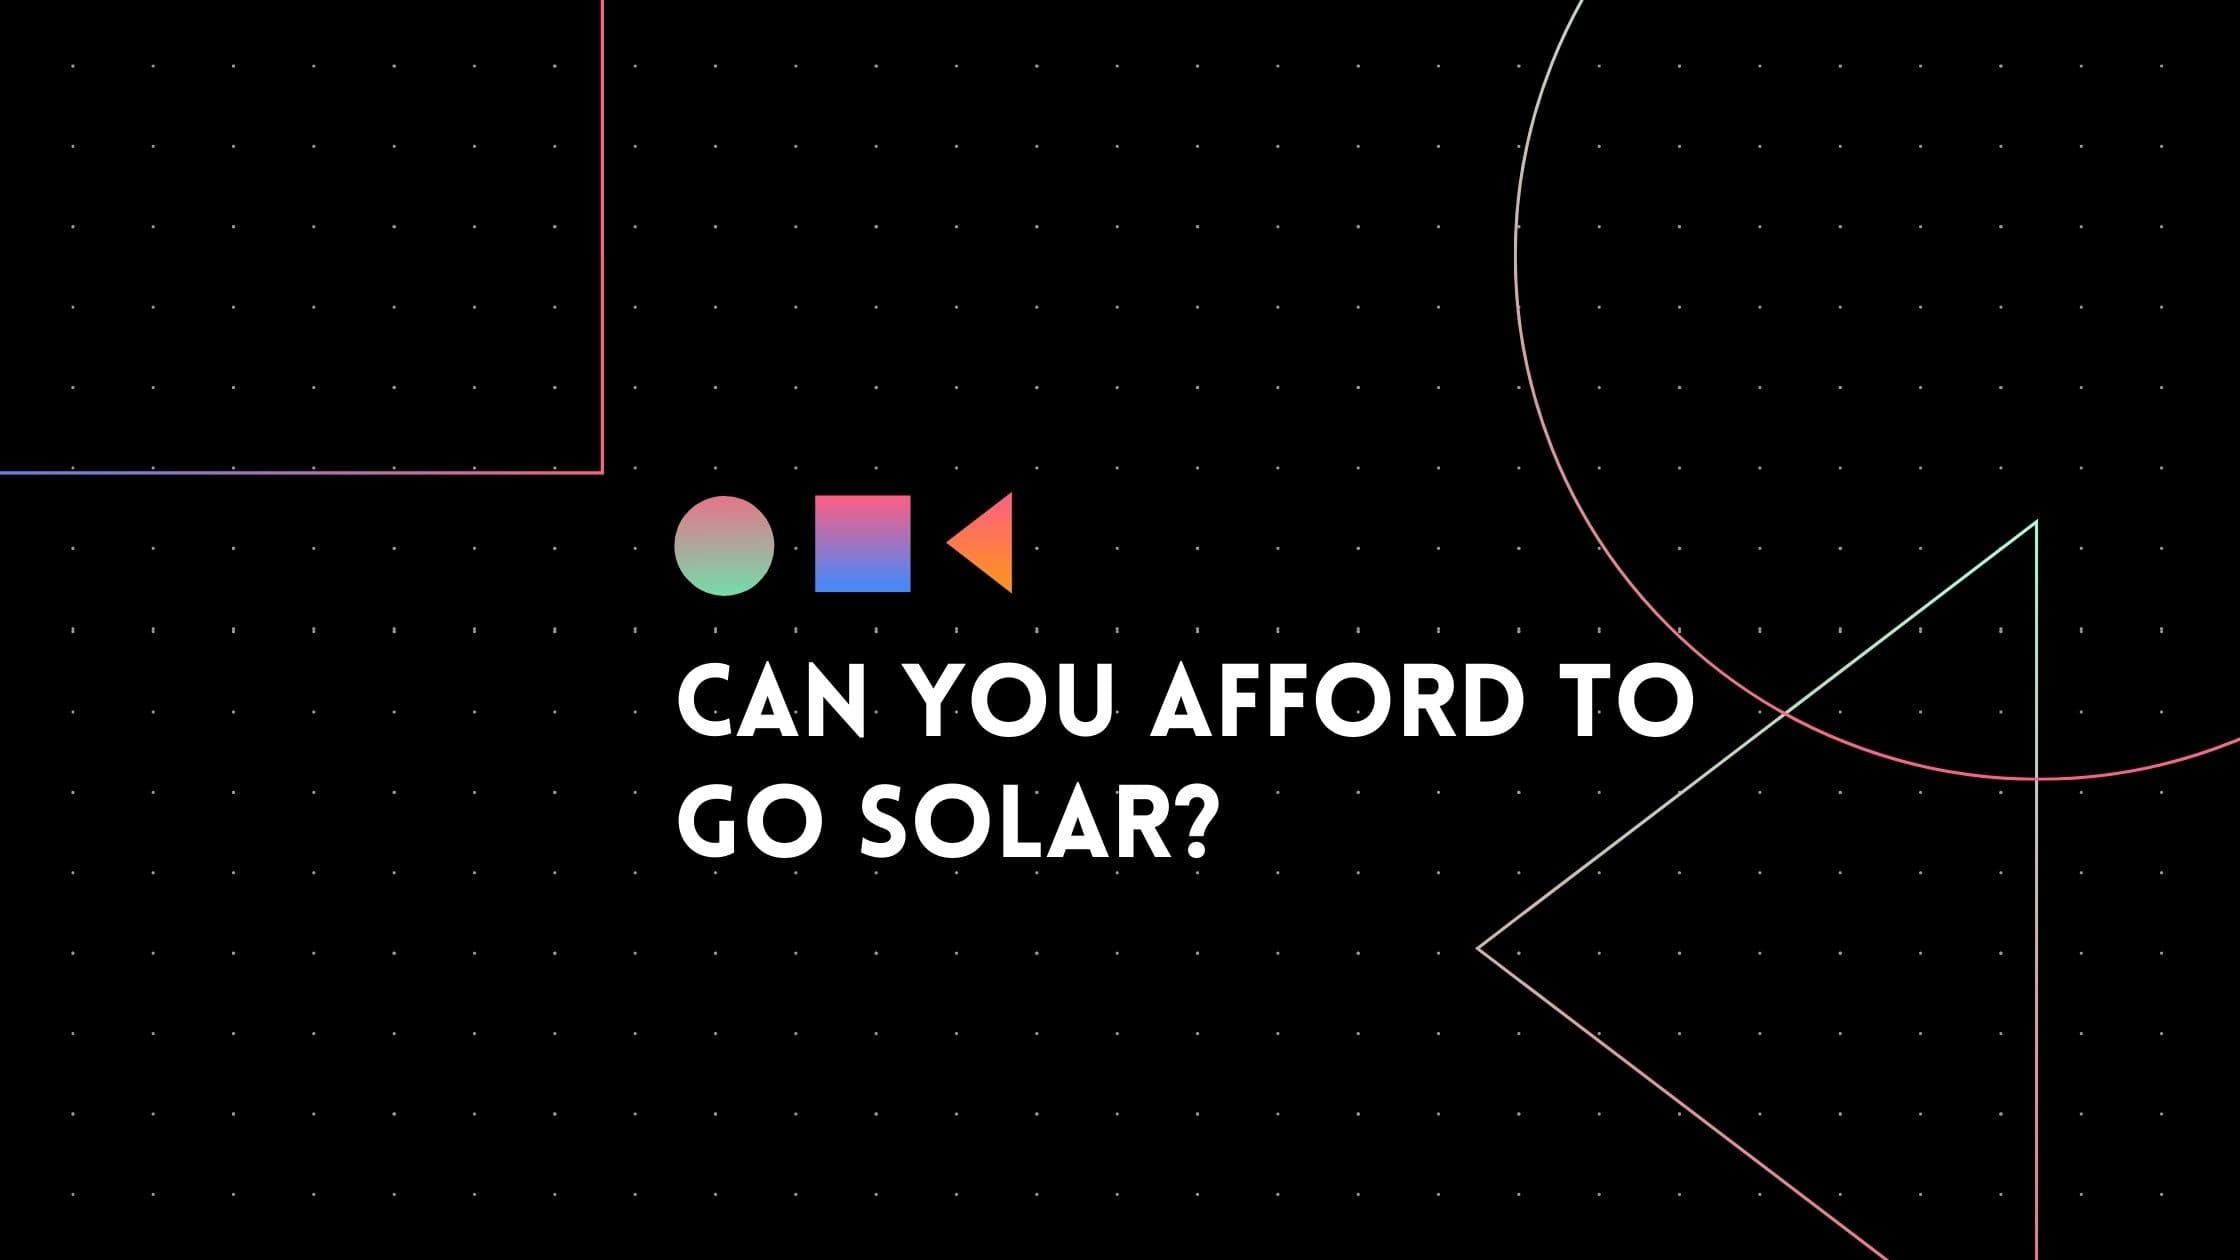 can you afford solar